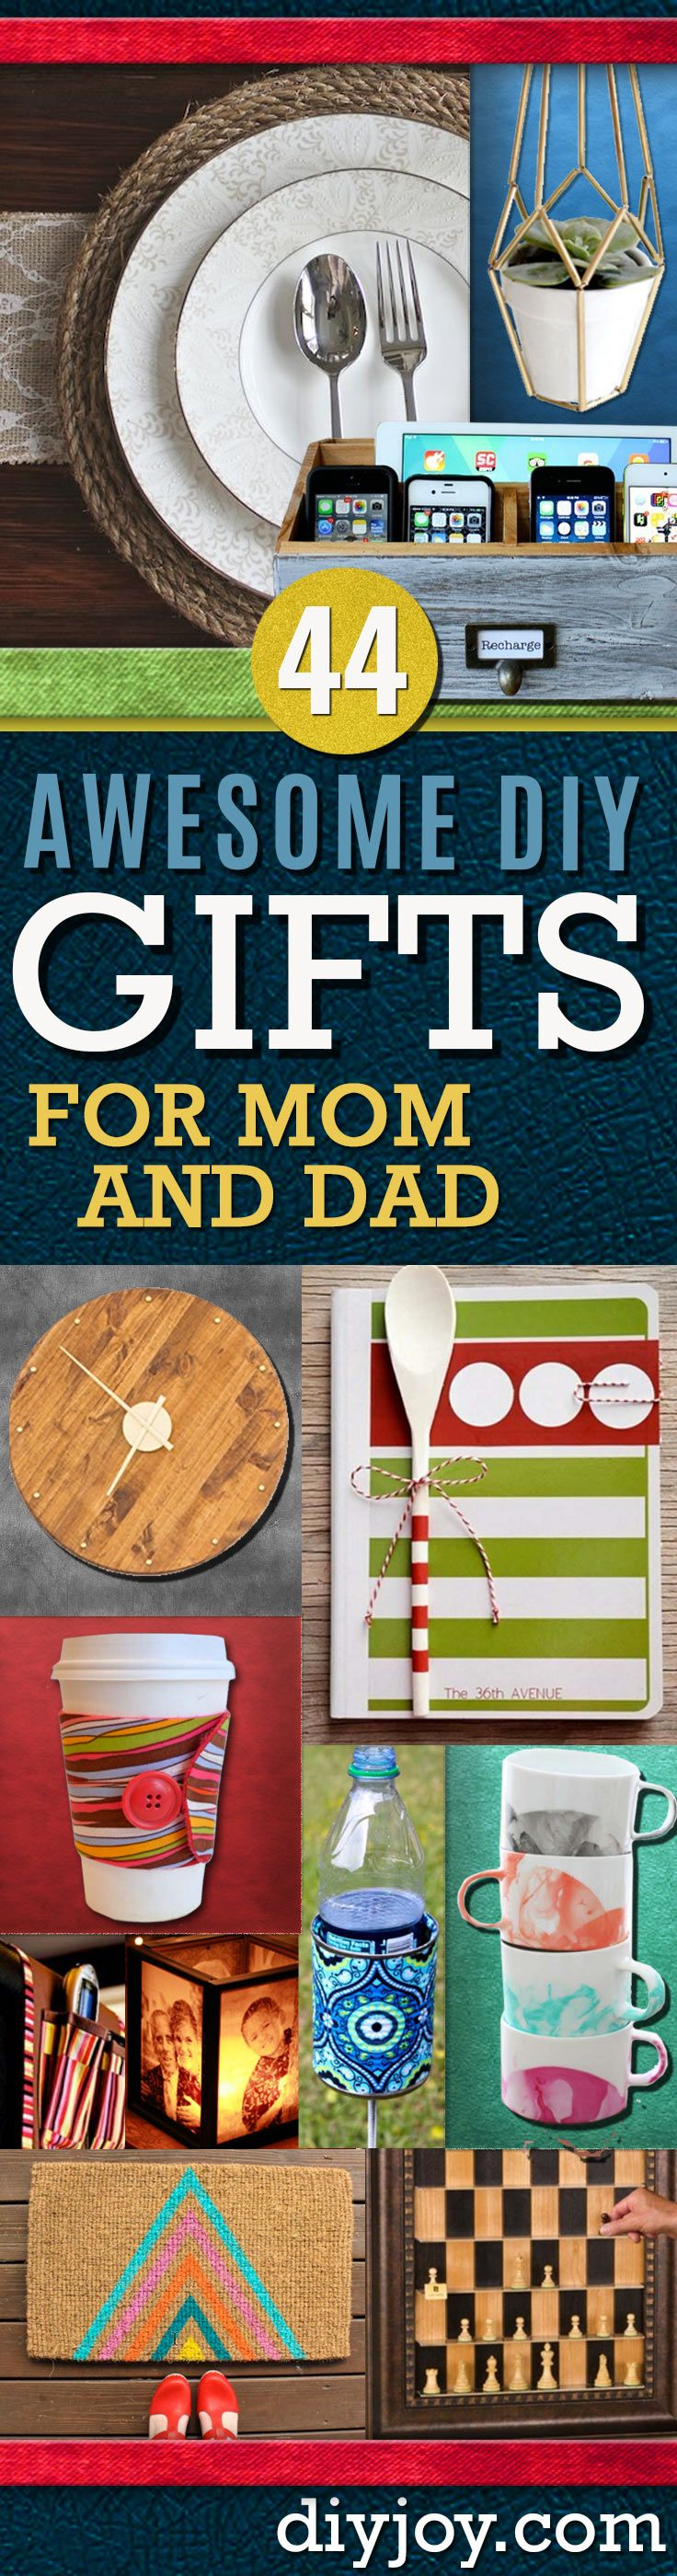 Awesome Diy Gift Ideas Mom And Dad Will Love Homemade